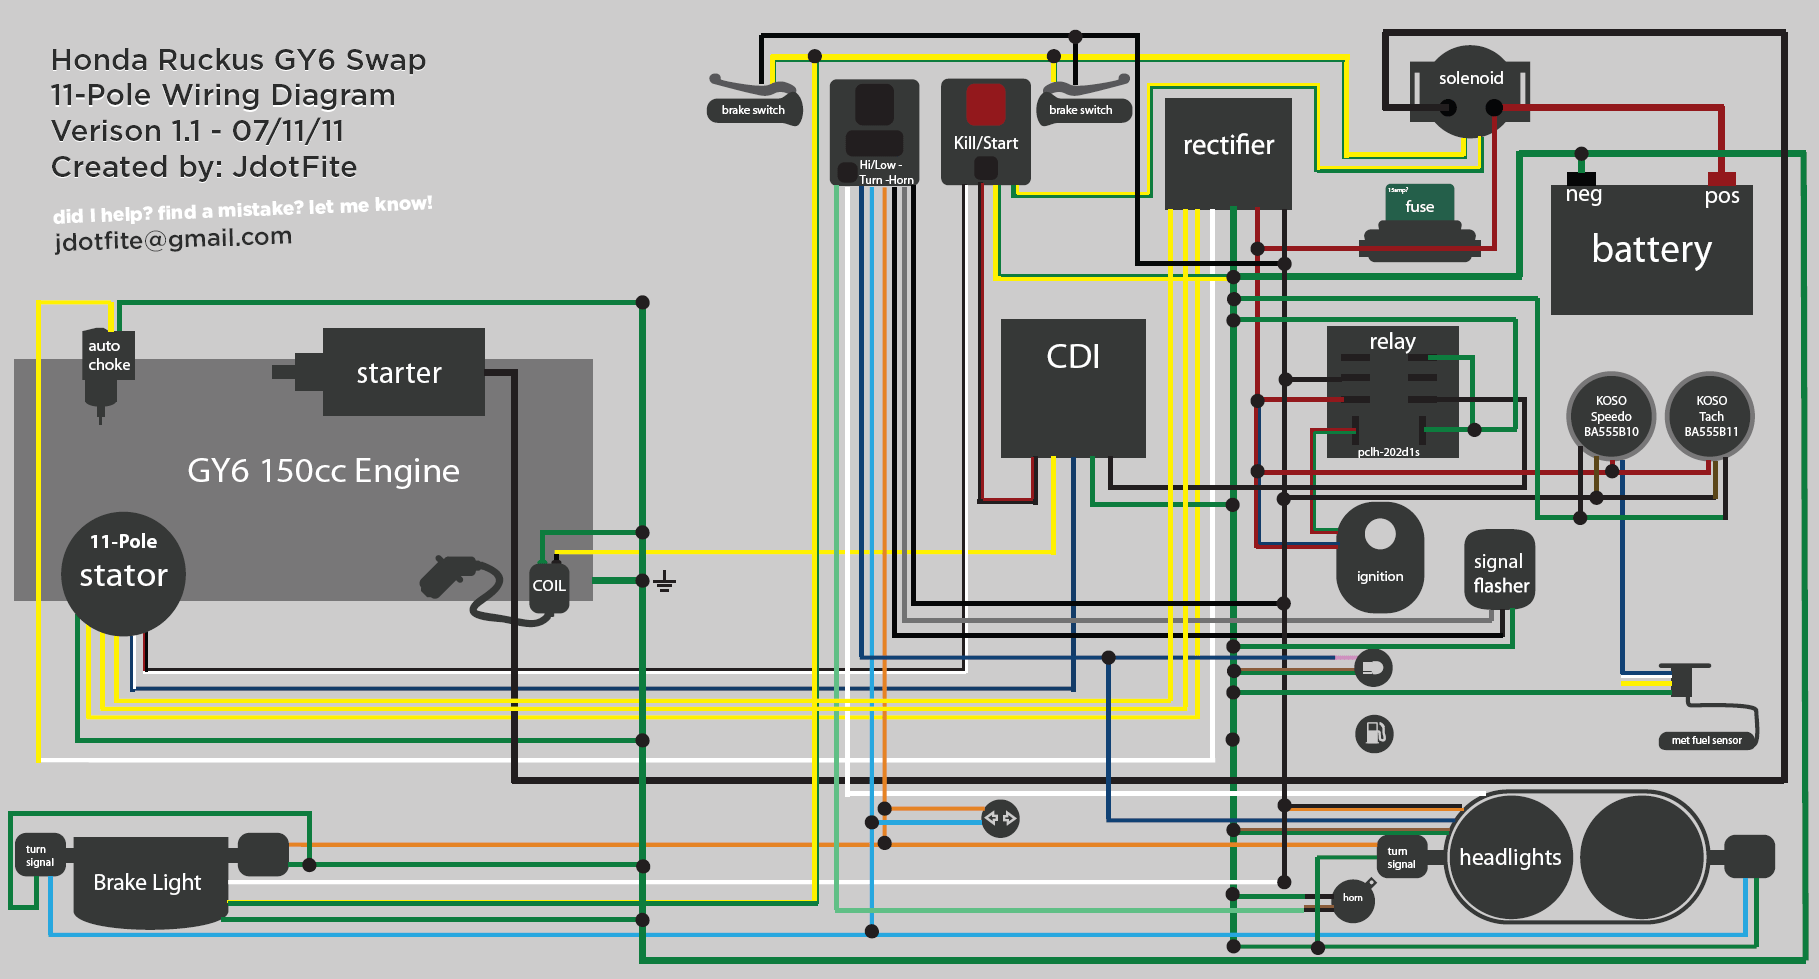 ruckus gy6 wiring diagram gy6 wiring harness diagram gy6 ignition wiring diagram \u2022 free gy6 dc cdi wiring diagram at mifinder.co